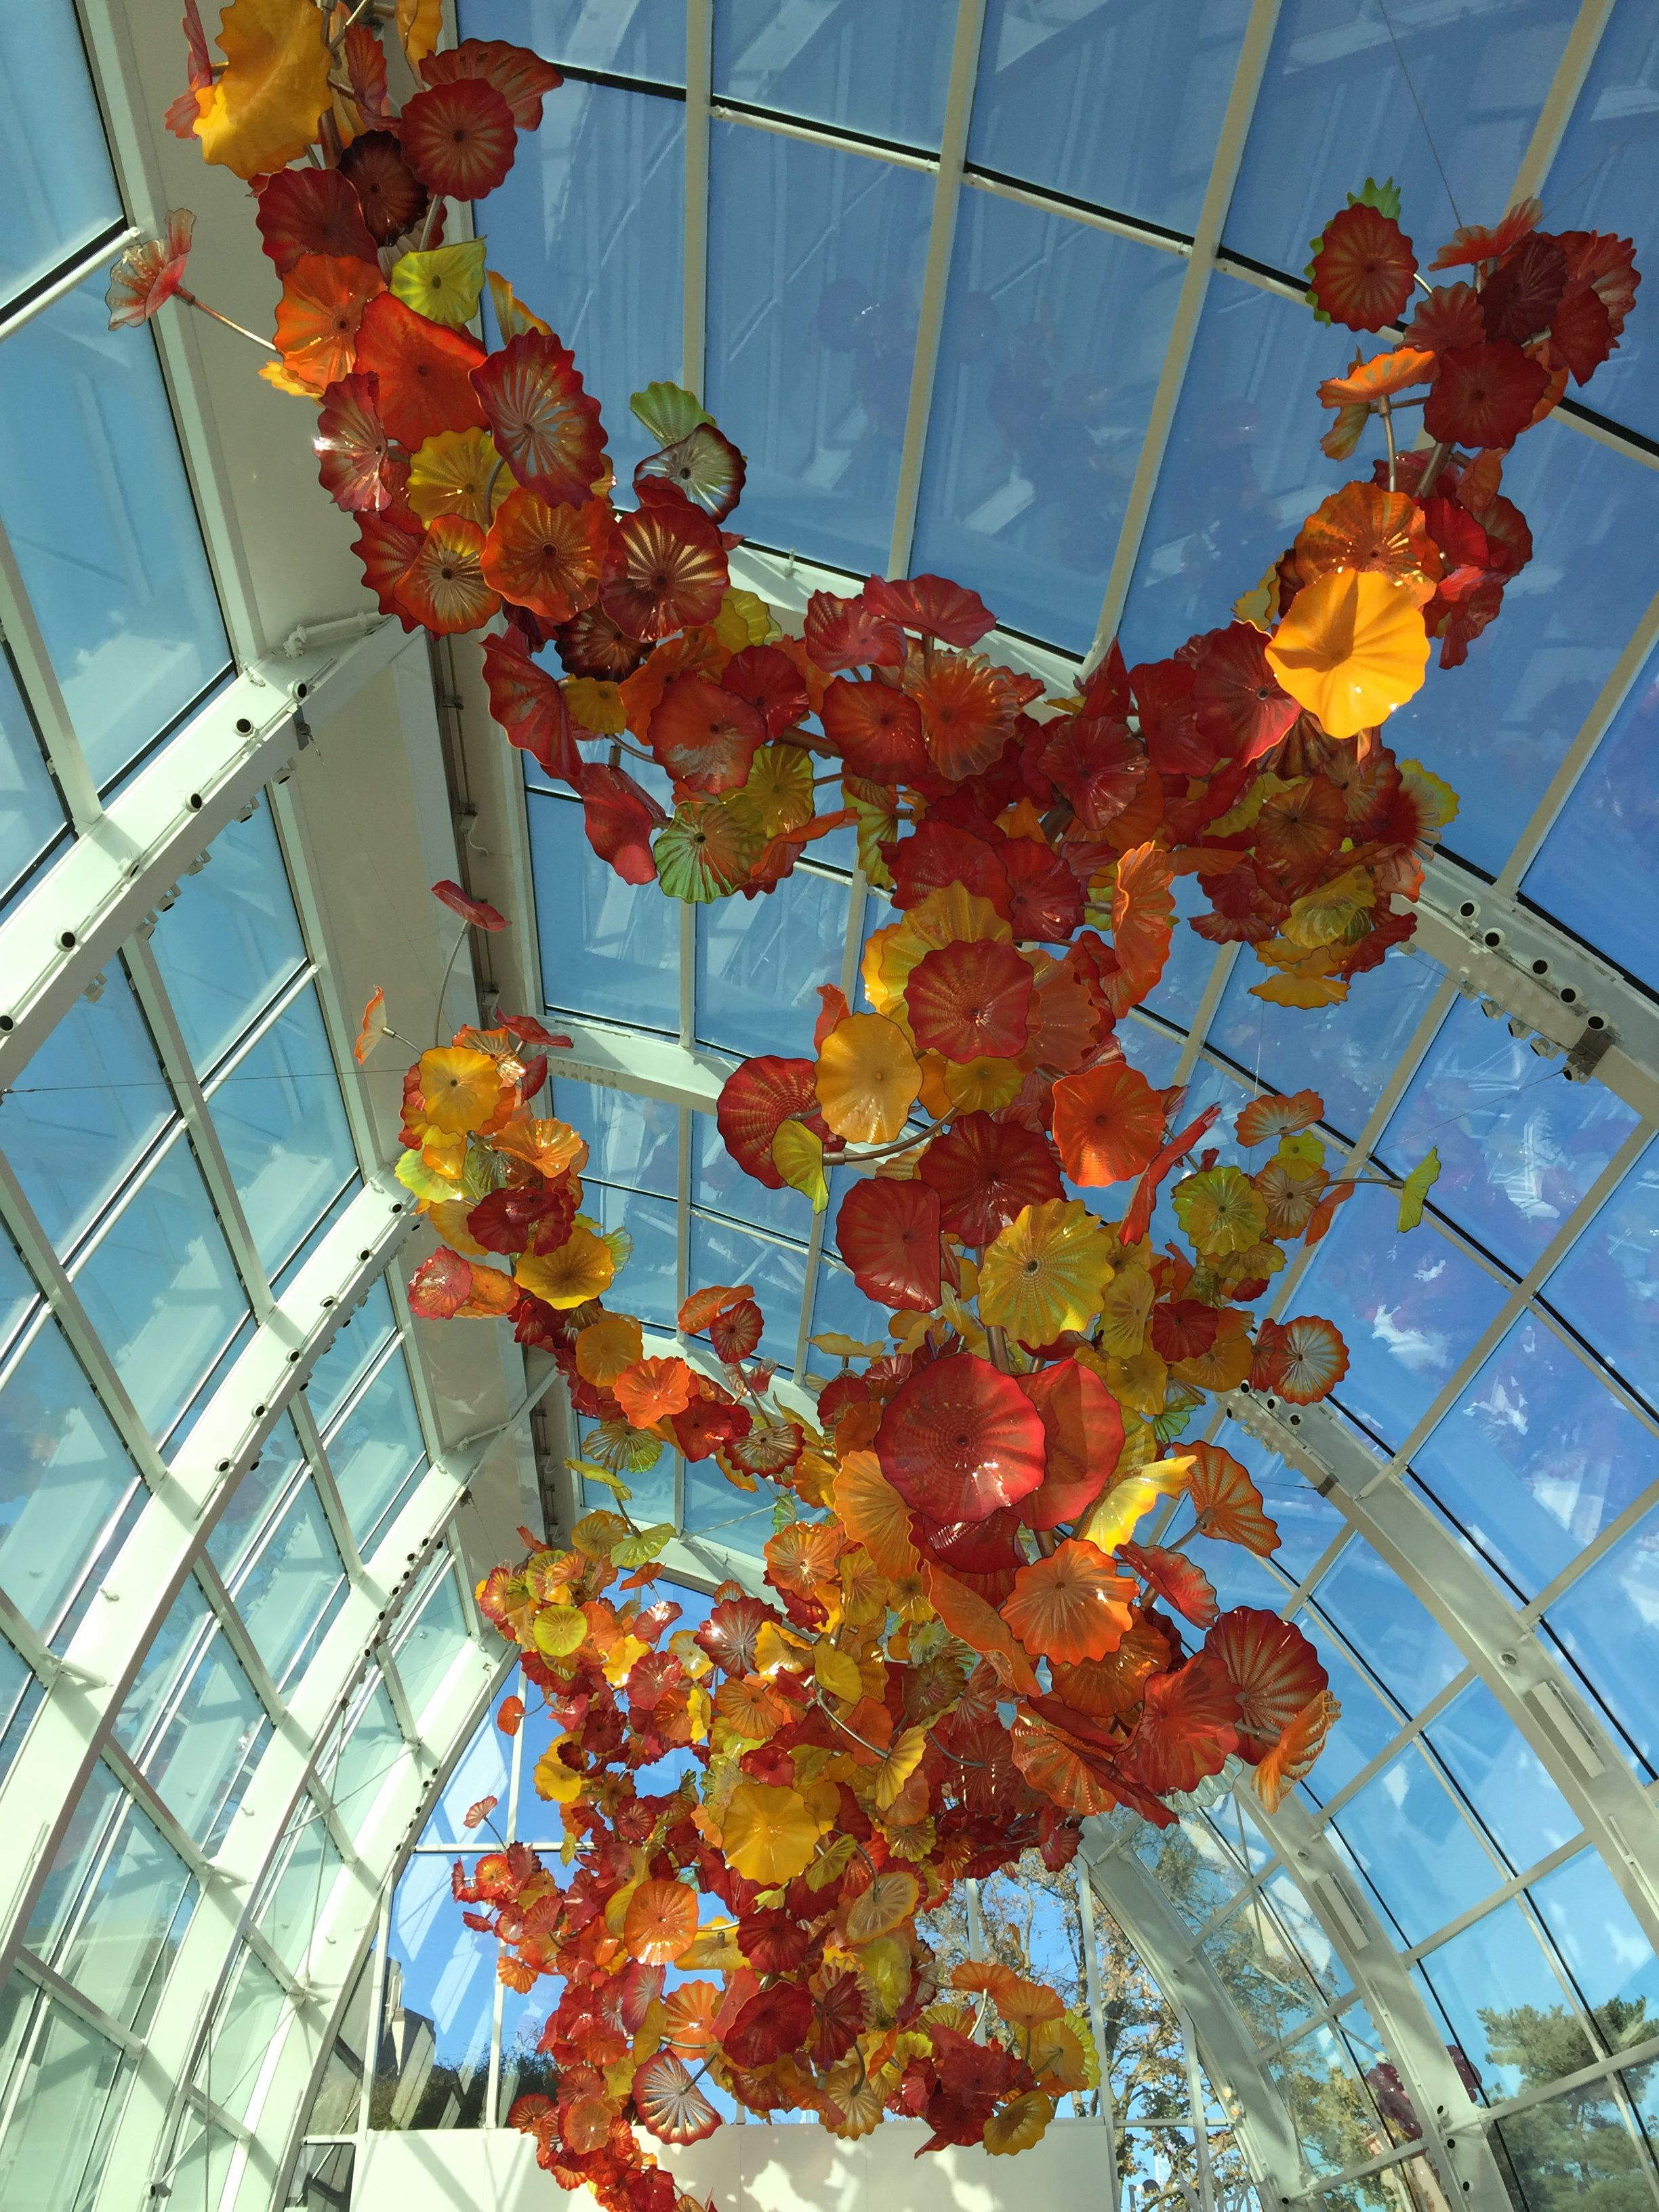 The Conservatory at the Chihuly Glass Gardens